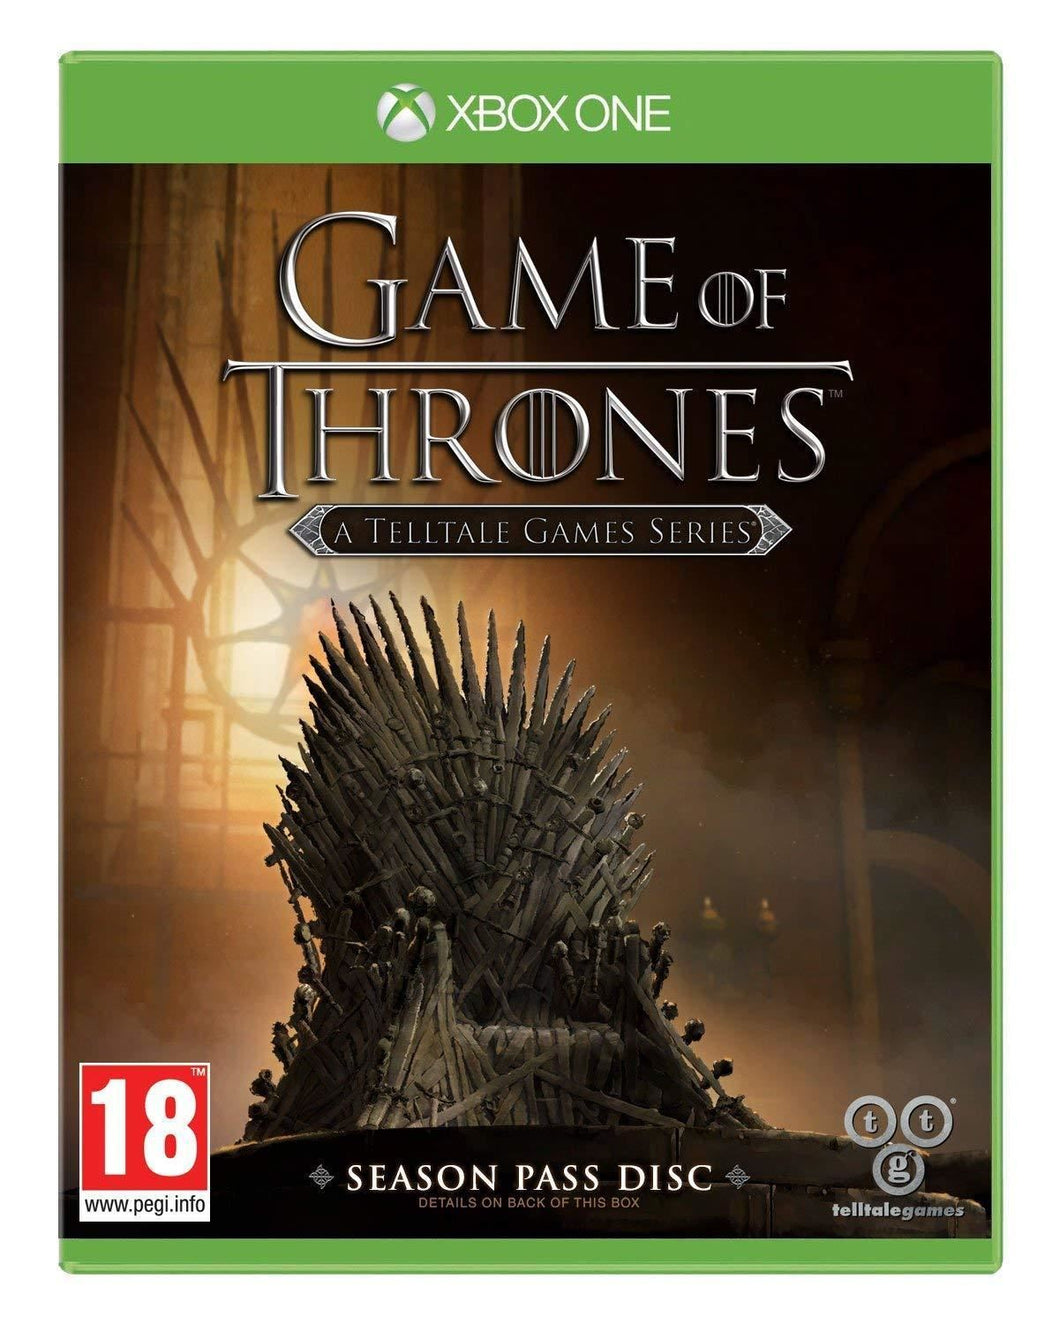 GAME OF THRONES: Telltale Games - Season Pass Disc